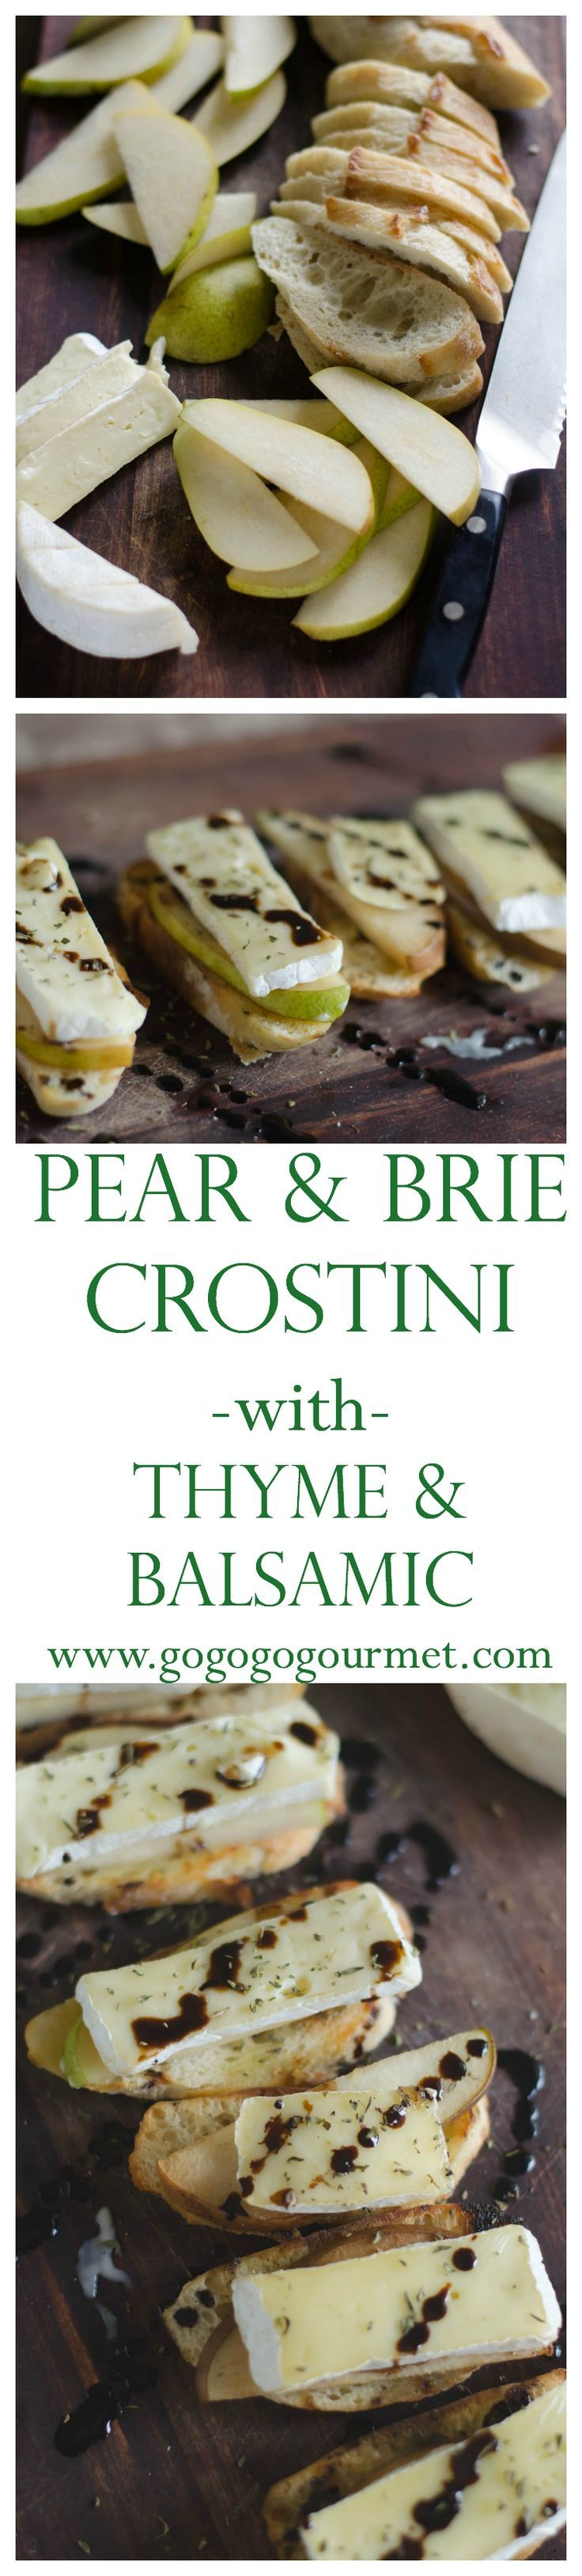 So quick and easy, everyone is guaranteed to love this delicious appetizer. Pear and Brie Crostini with Thyme and Balsamic.